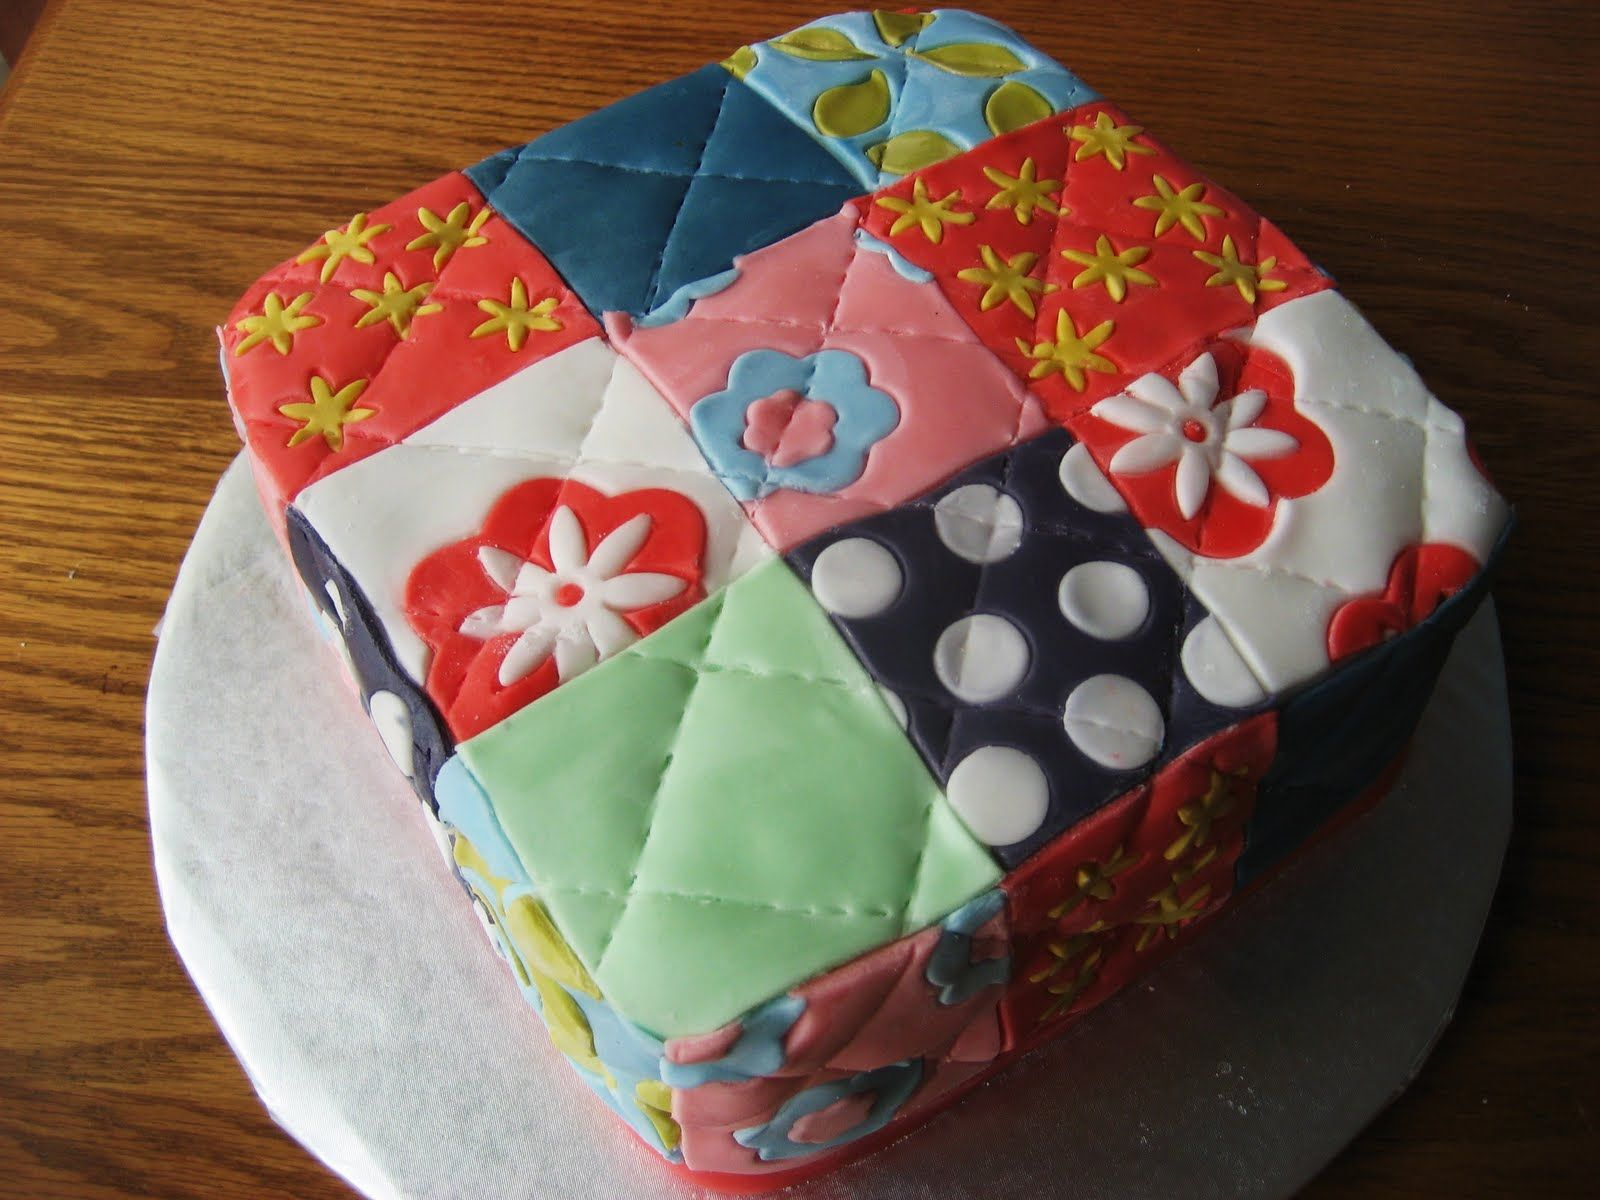 Cake Decorating Quilt Design : Quilt Cake Christening Ideas Pinterest Quilted cake ...